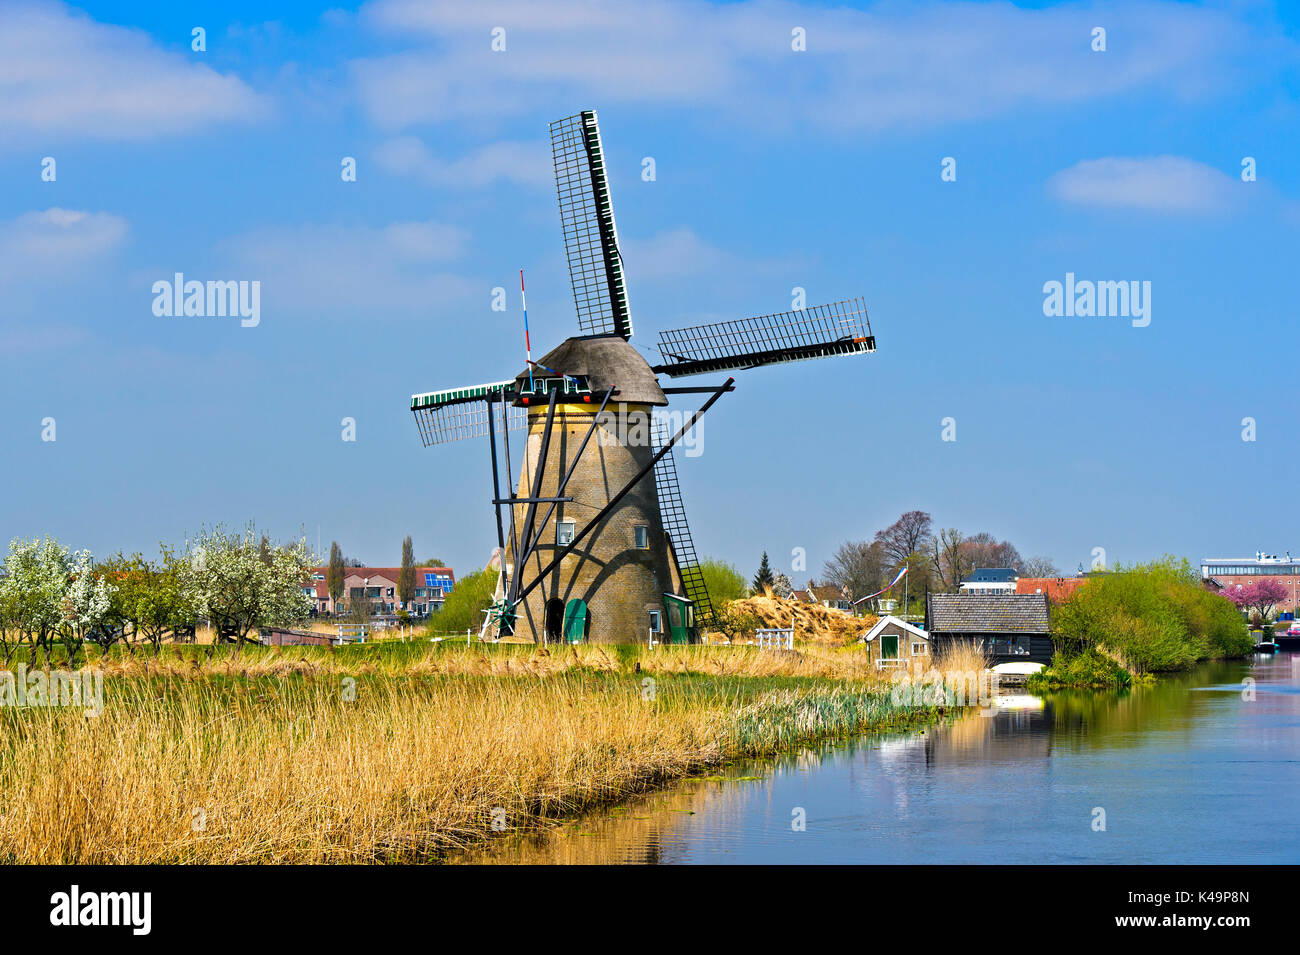 Dutch Windmill, Unesco Wolrd Heritage Site Kinderdijk, South Holland, Netherlands - Stock Image